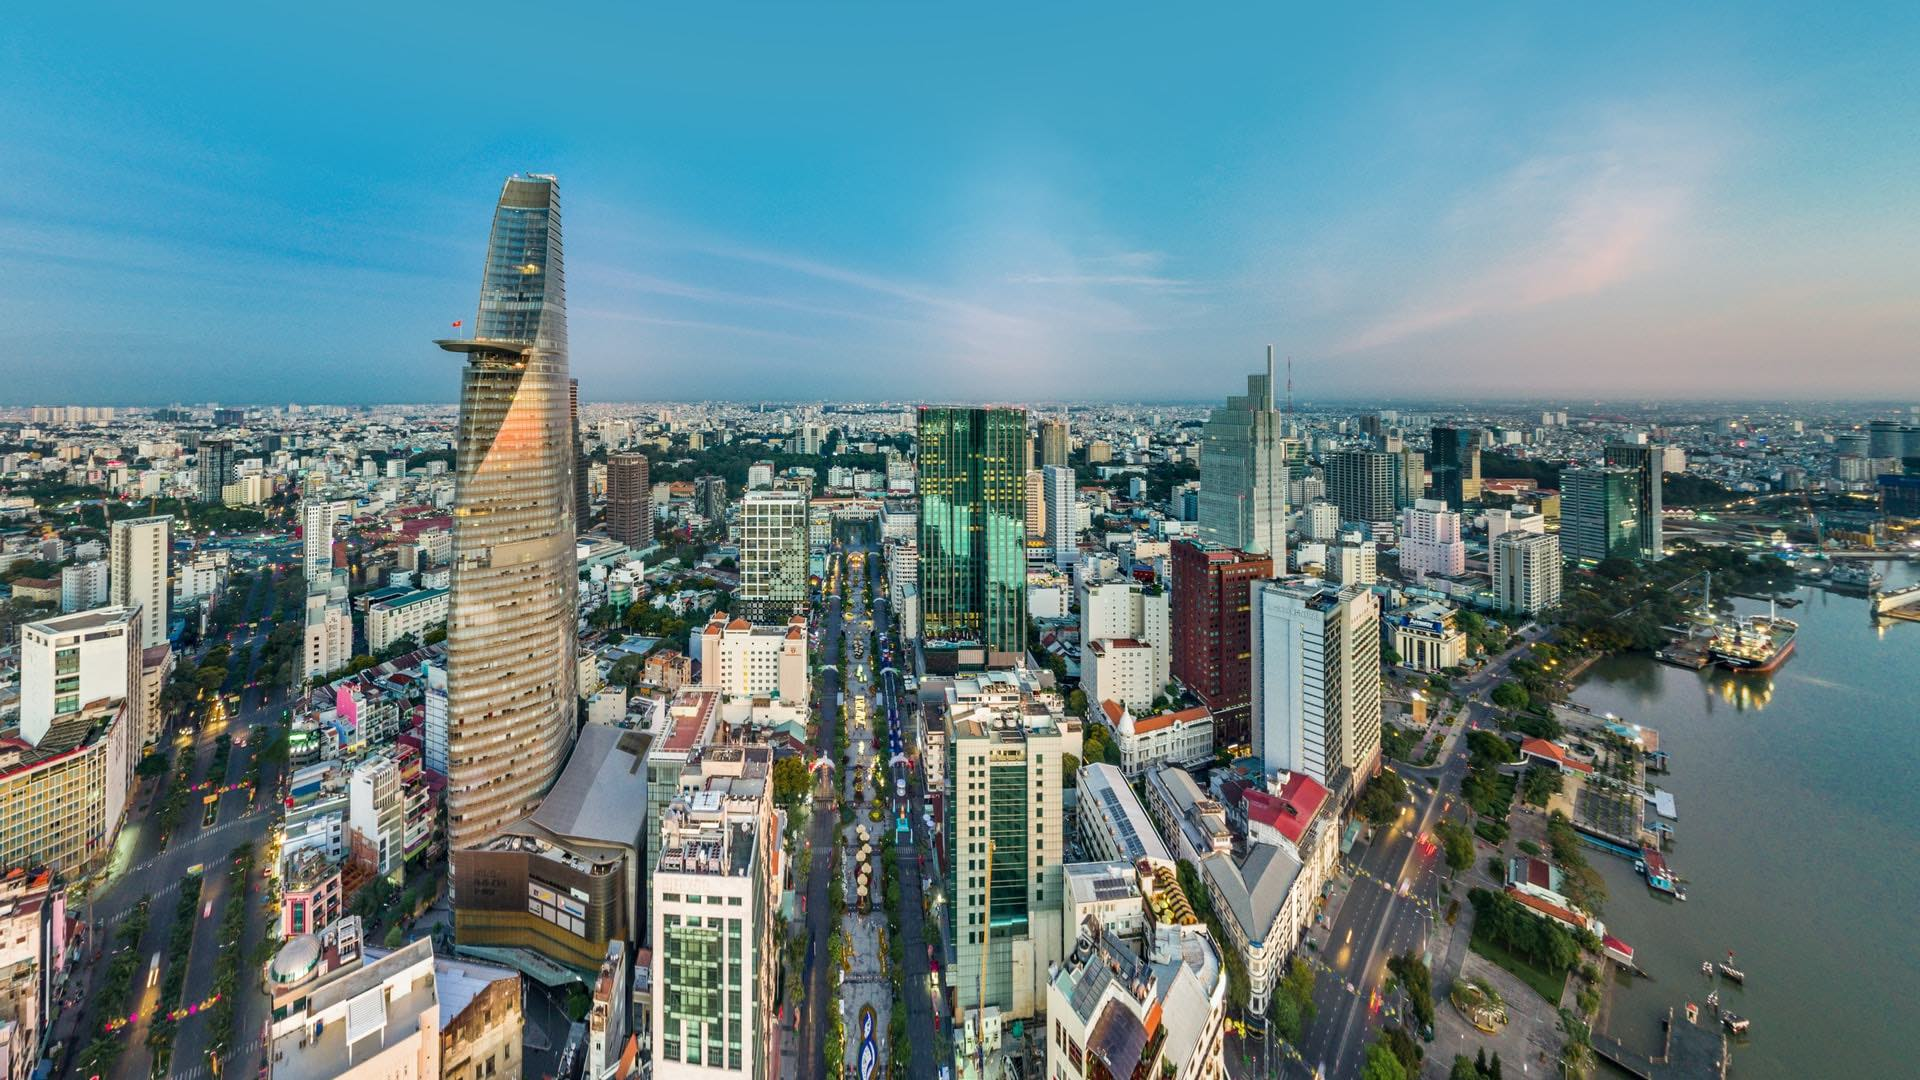 Top 10 Things to Do in Ho Chi Minh City / Saigon